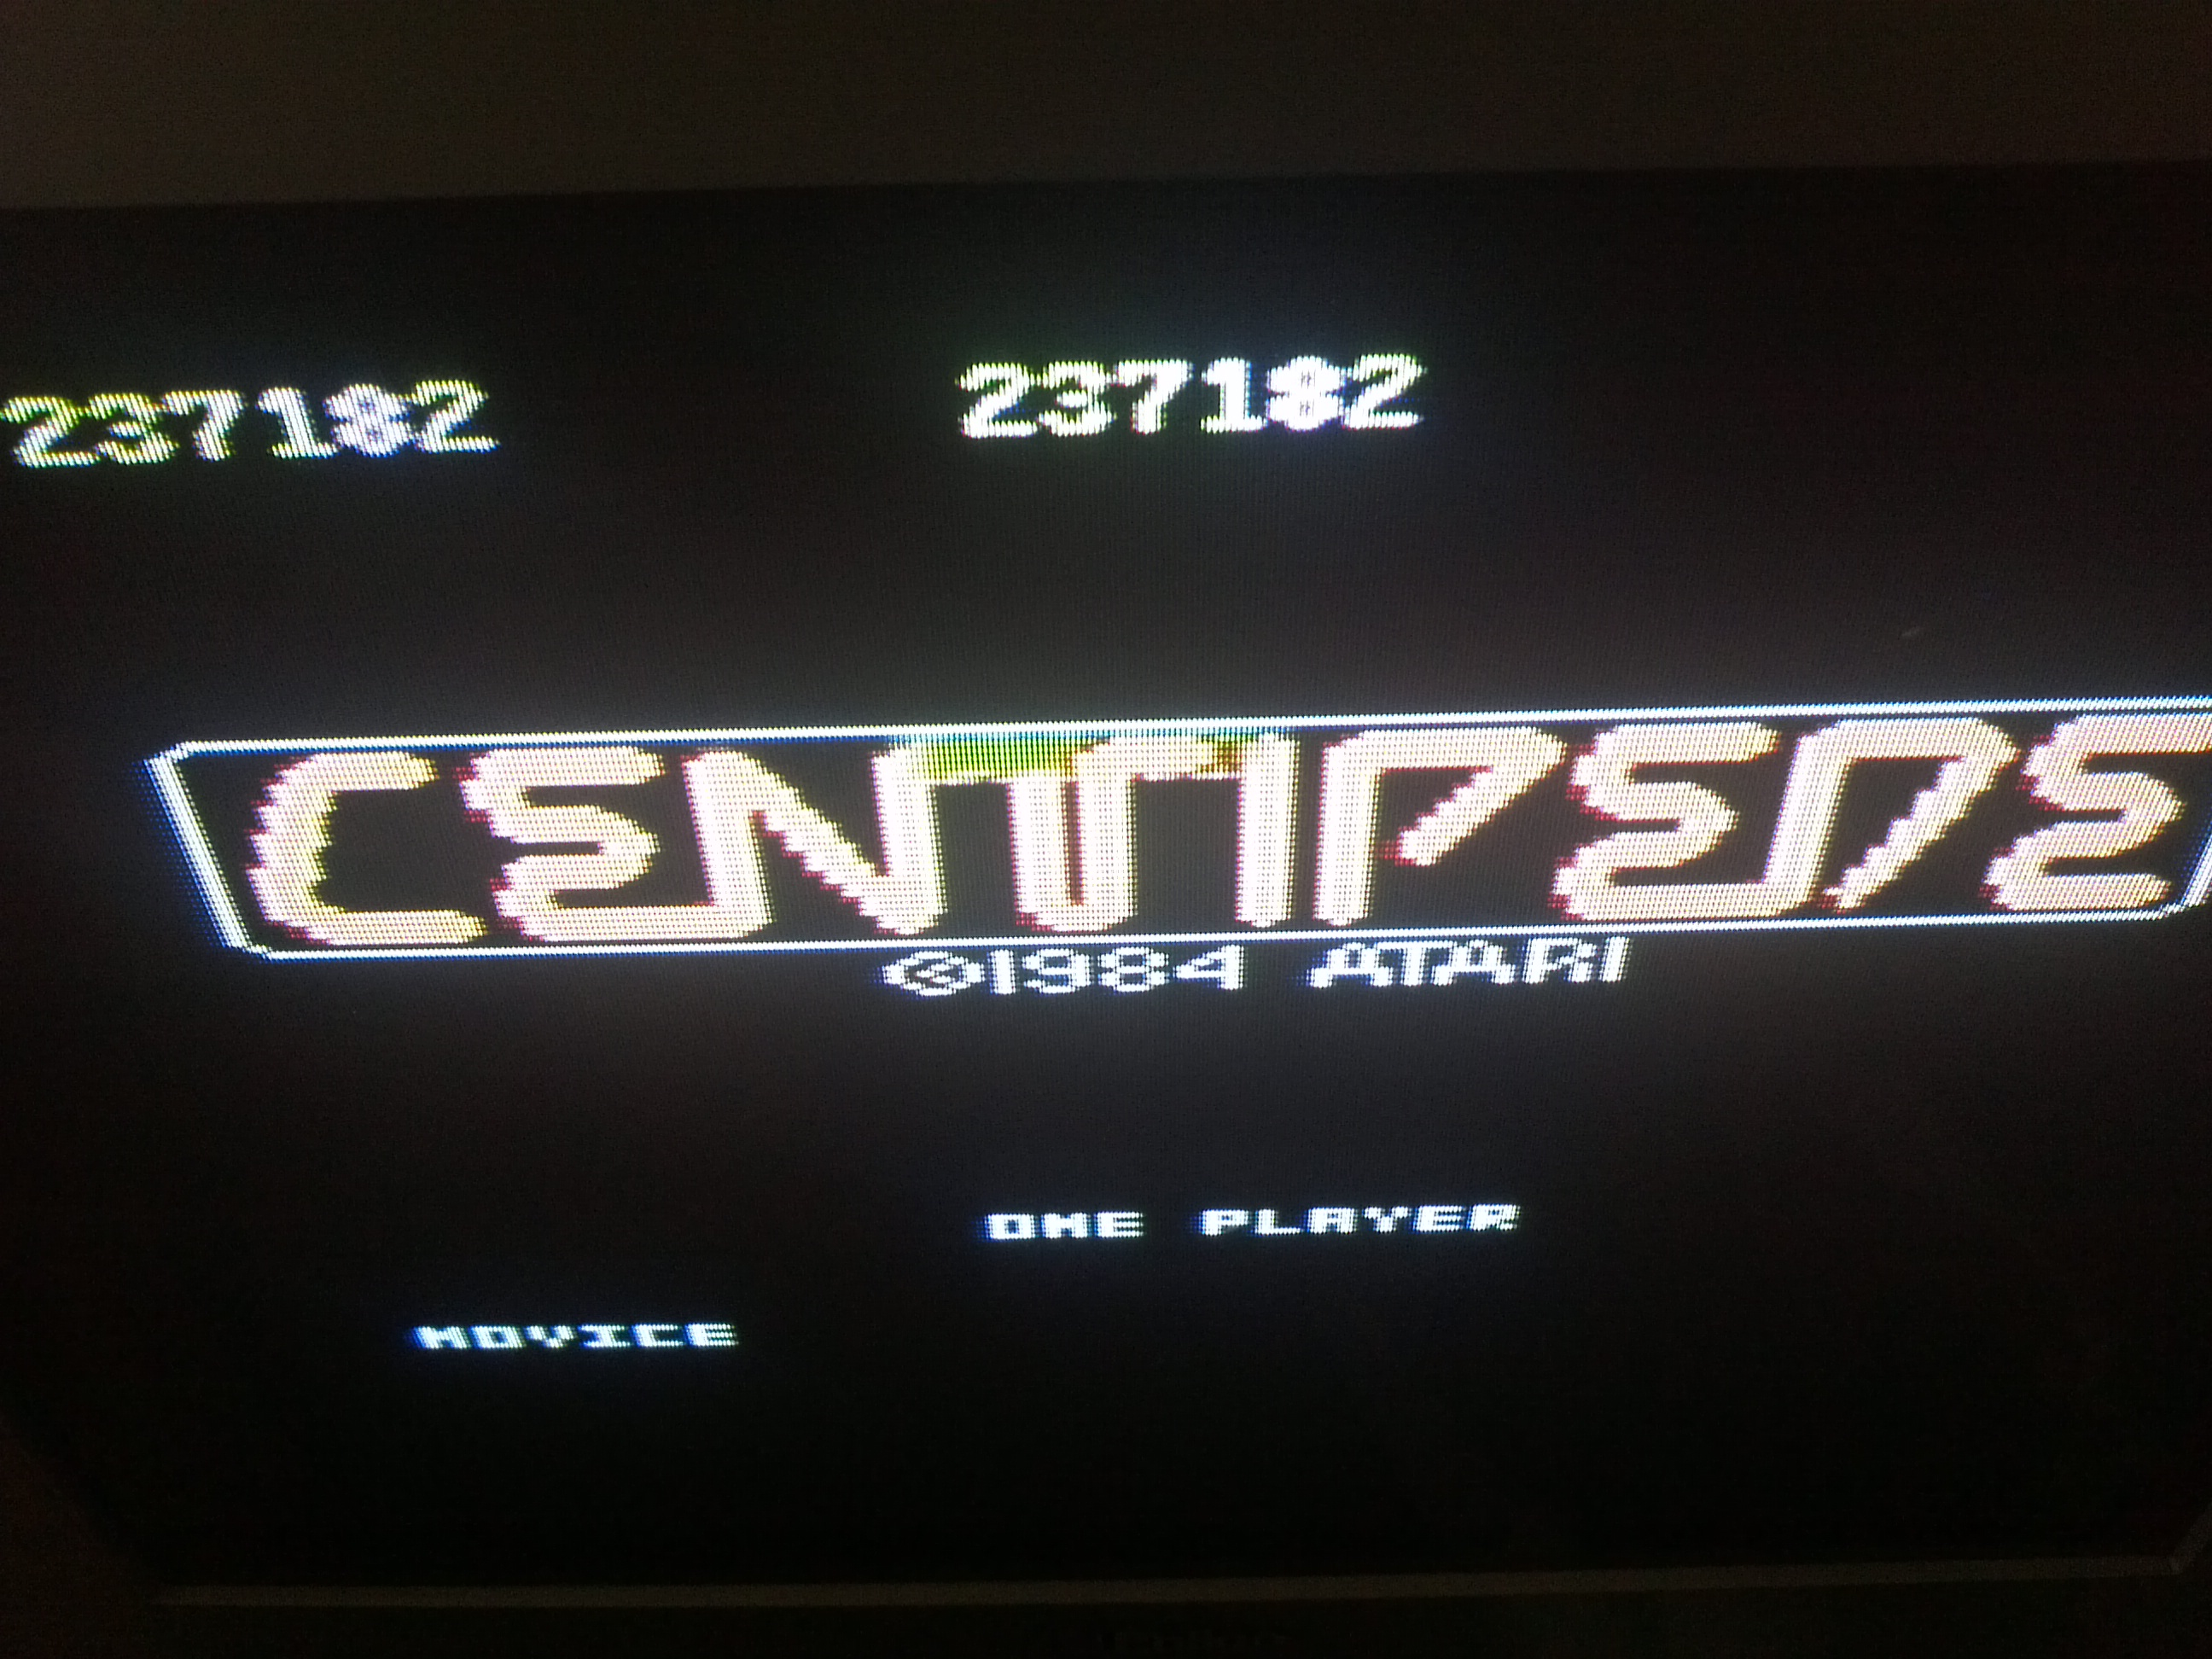 Centipede: Novice 237,182 points